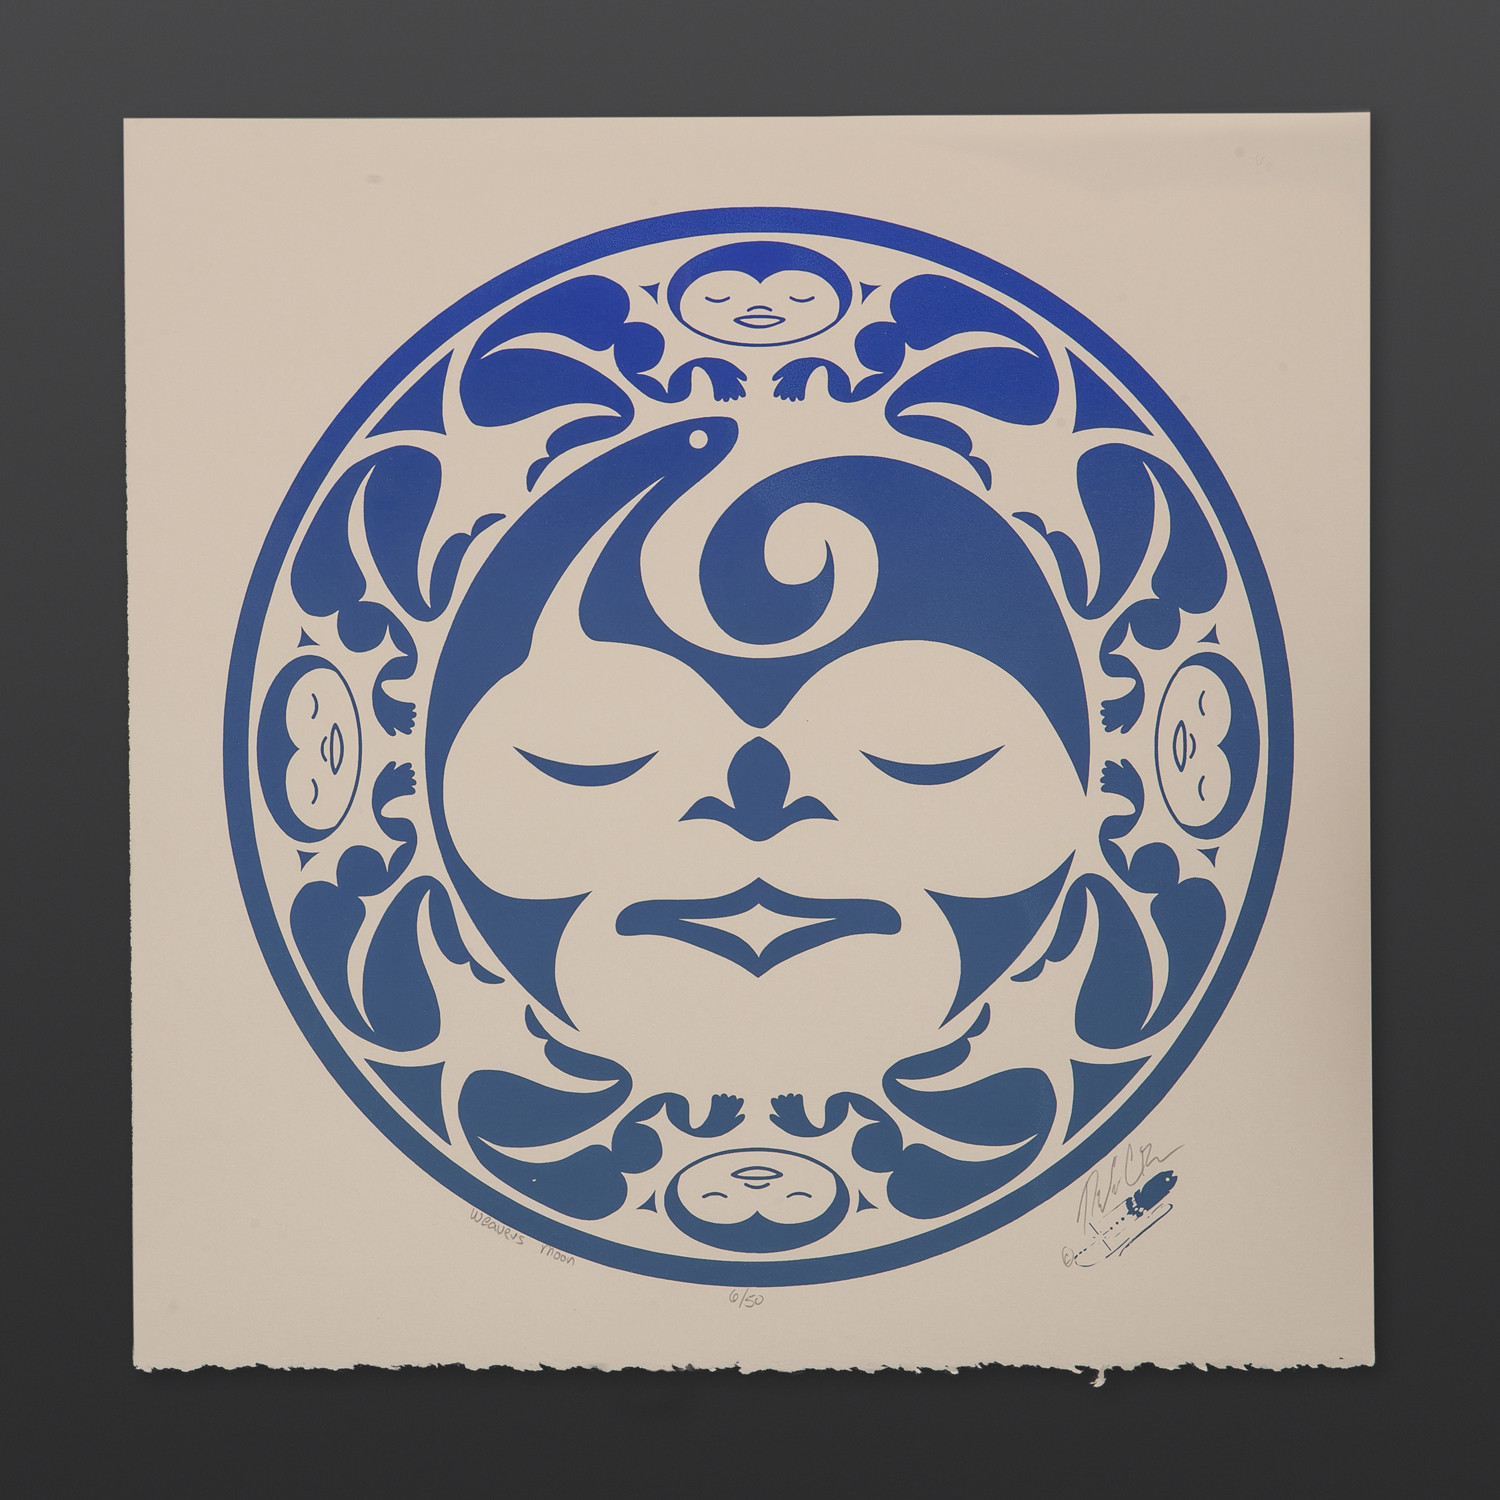 "Weaver's Moon - Blue Peter Boome Coast Salish Limited Edition Serigraph 15"" x 15"" $100"